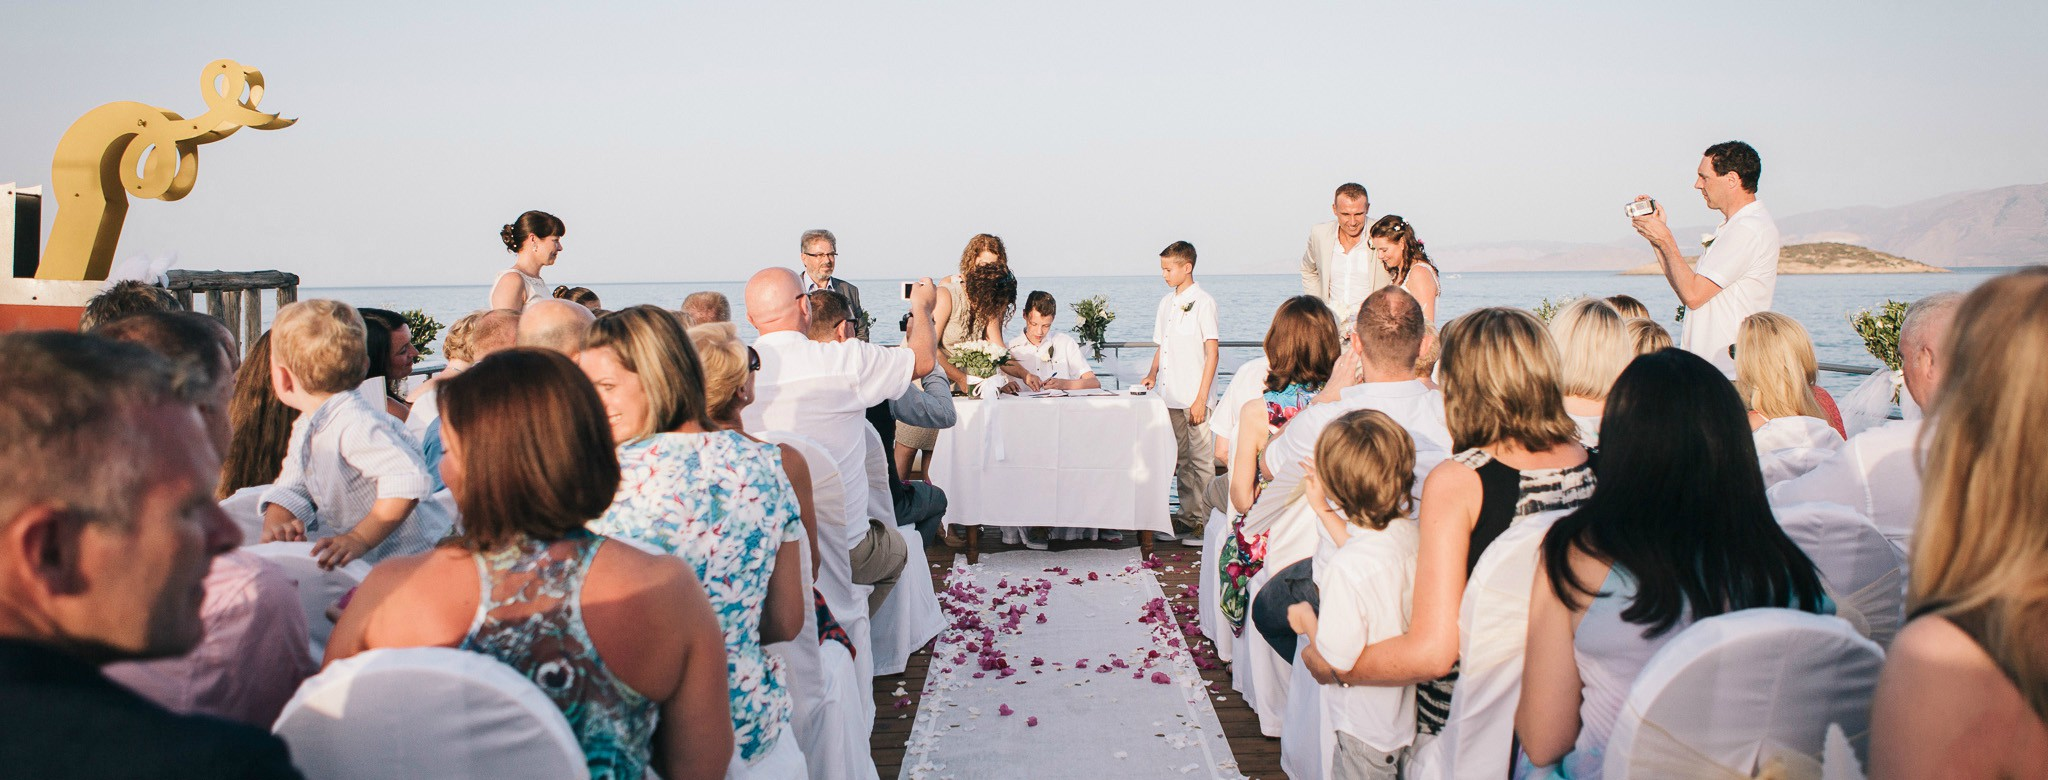 KAFENION TERRACE WEDDING CEREMONY.jpg